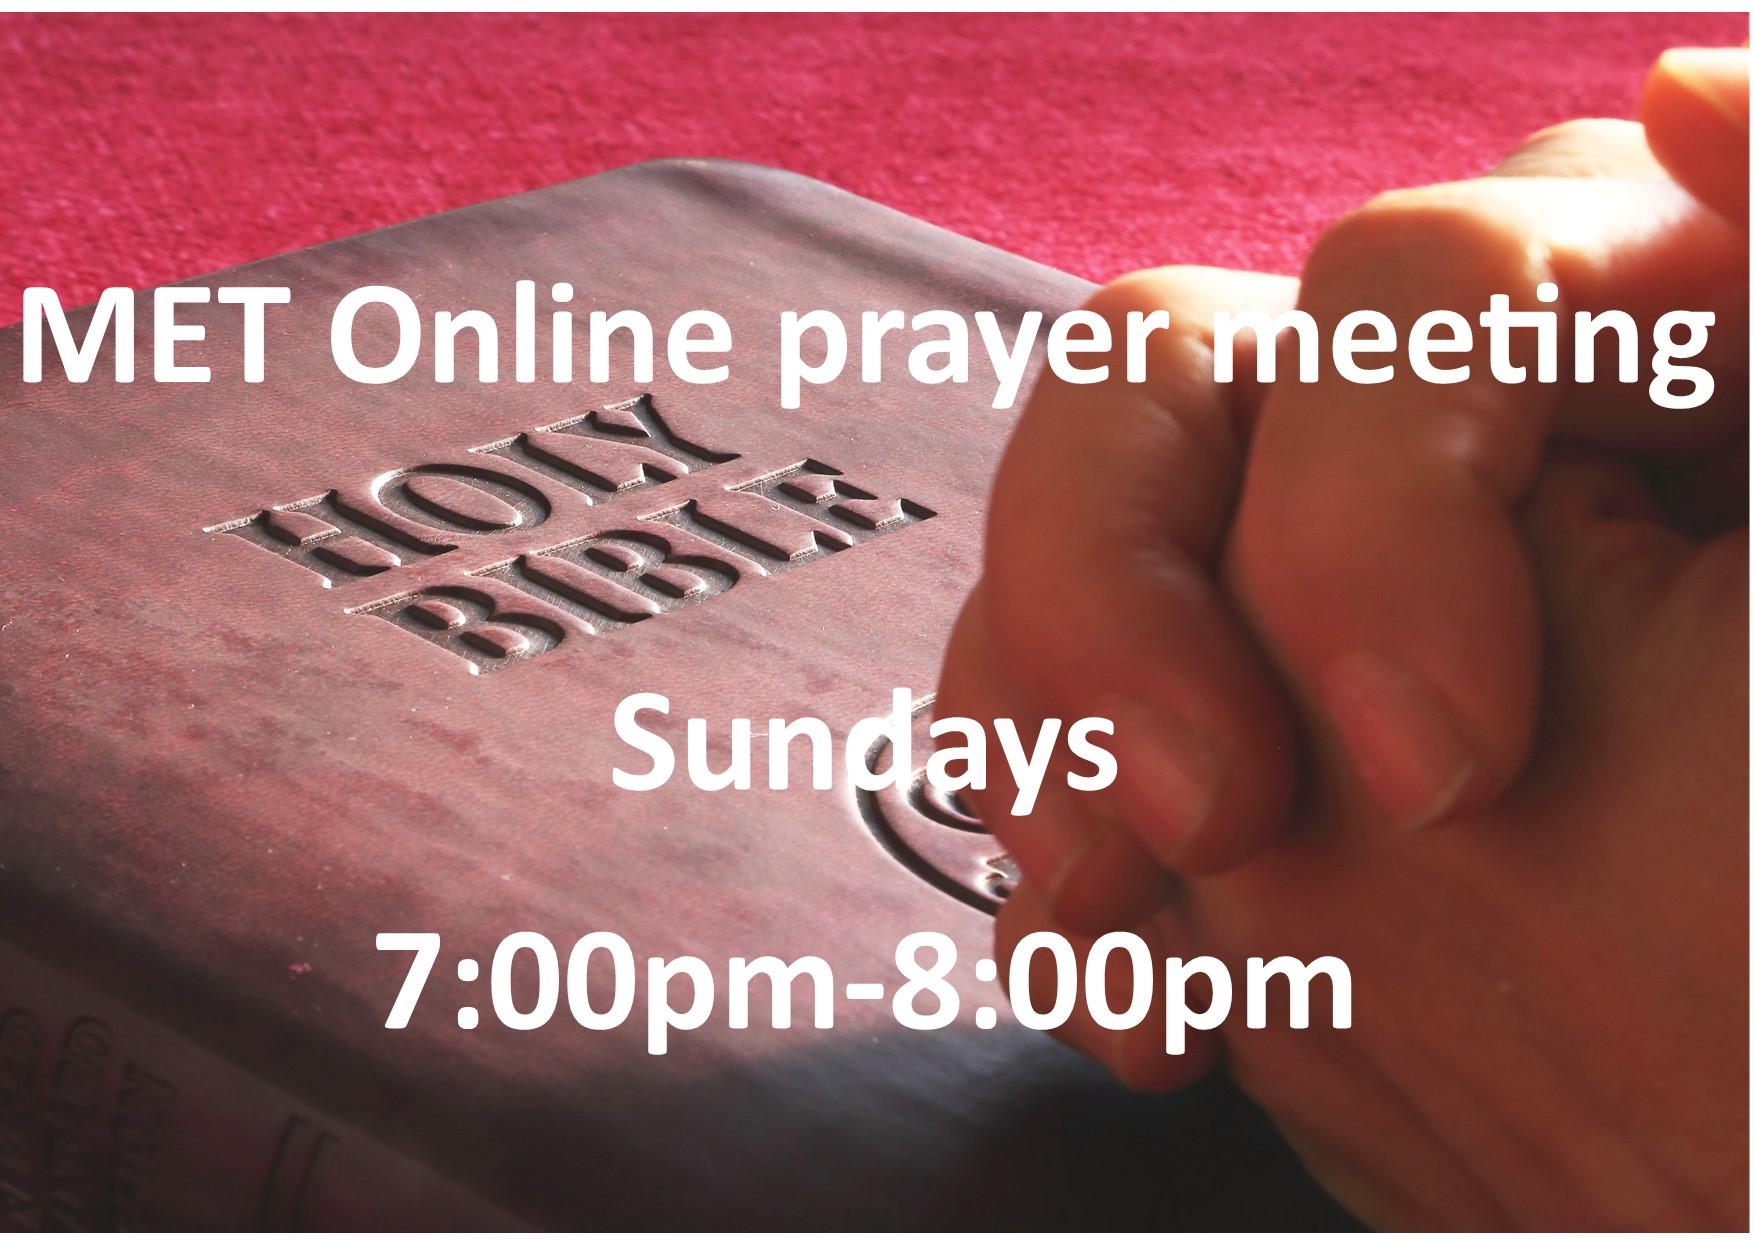 MET onlin prayer meeting small